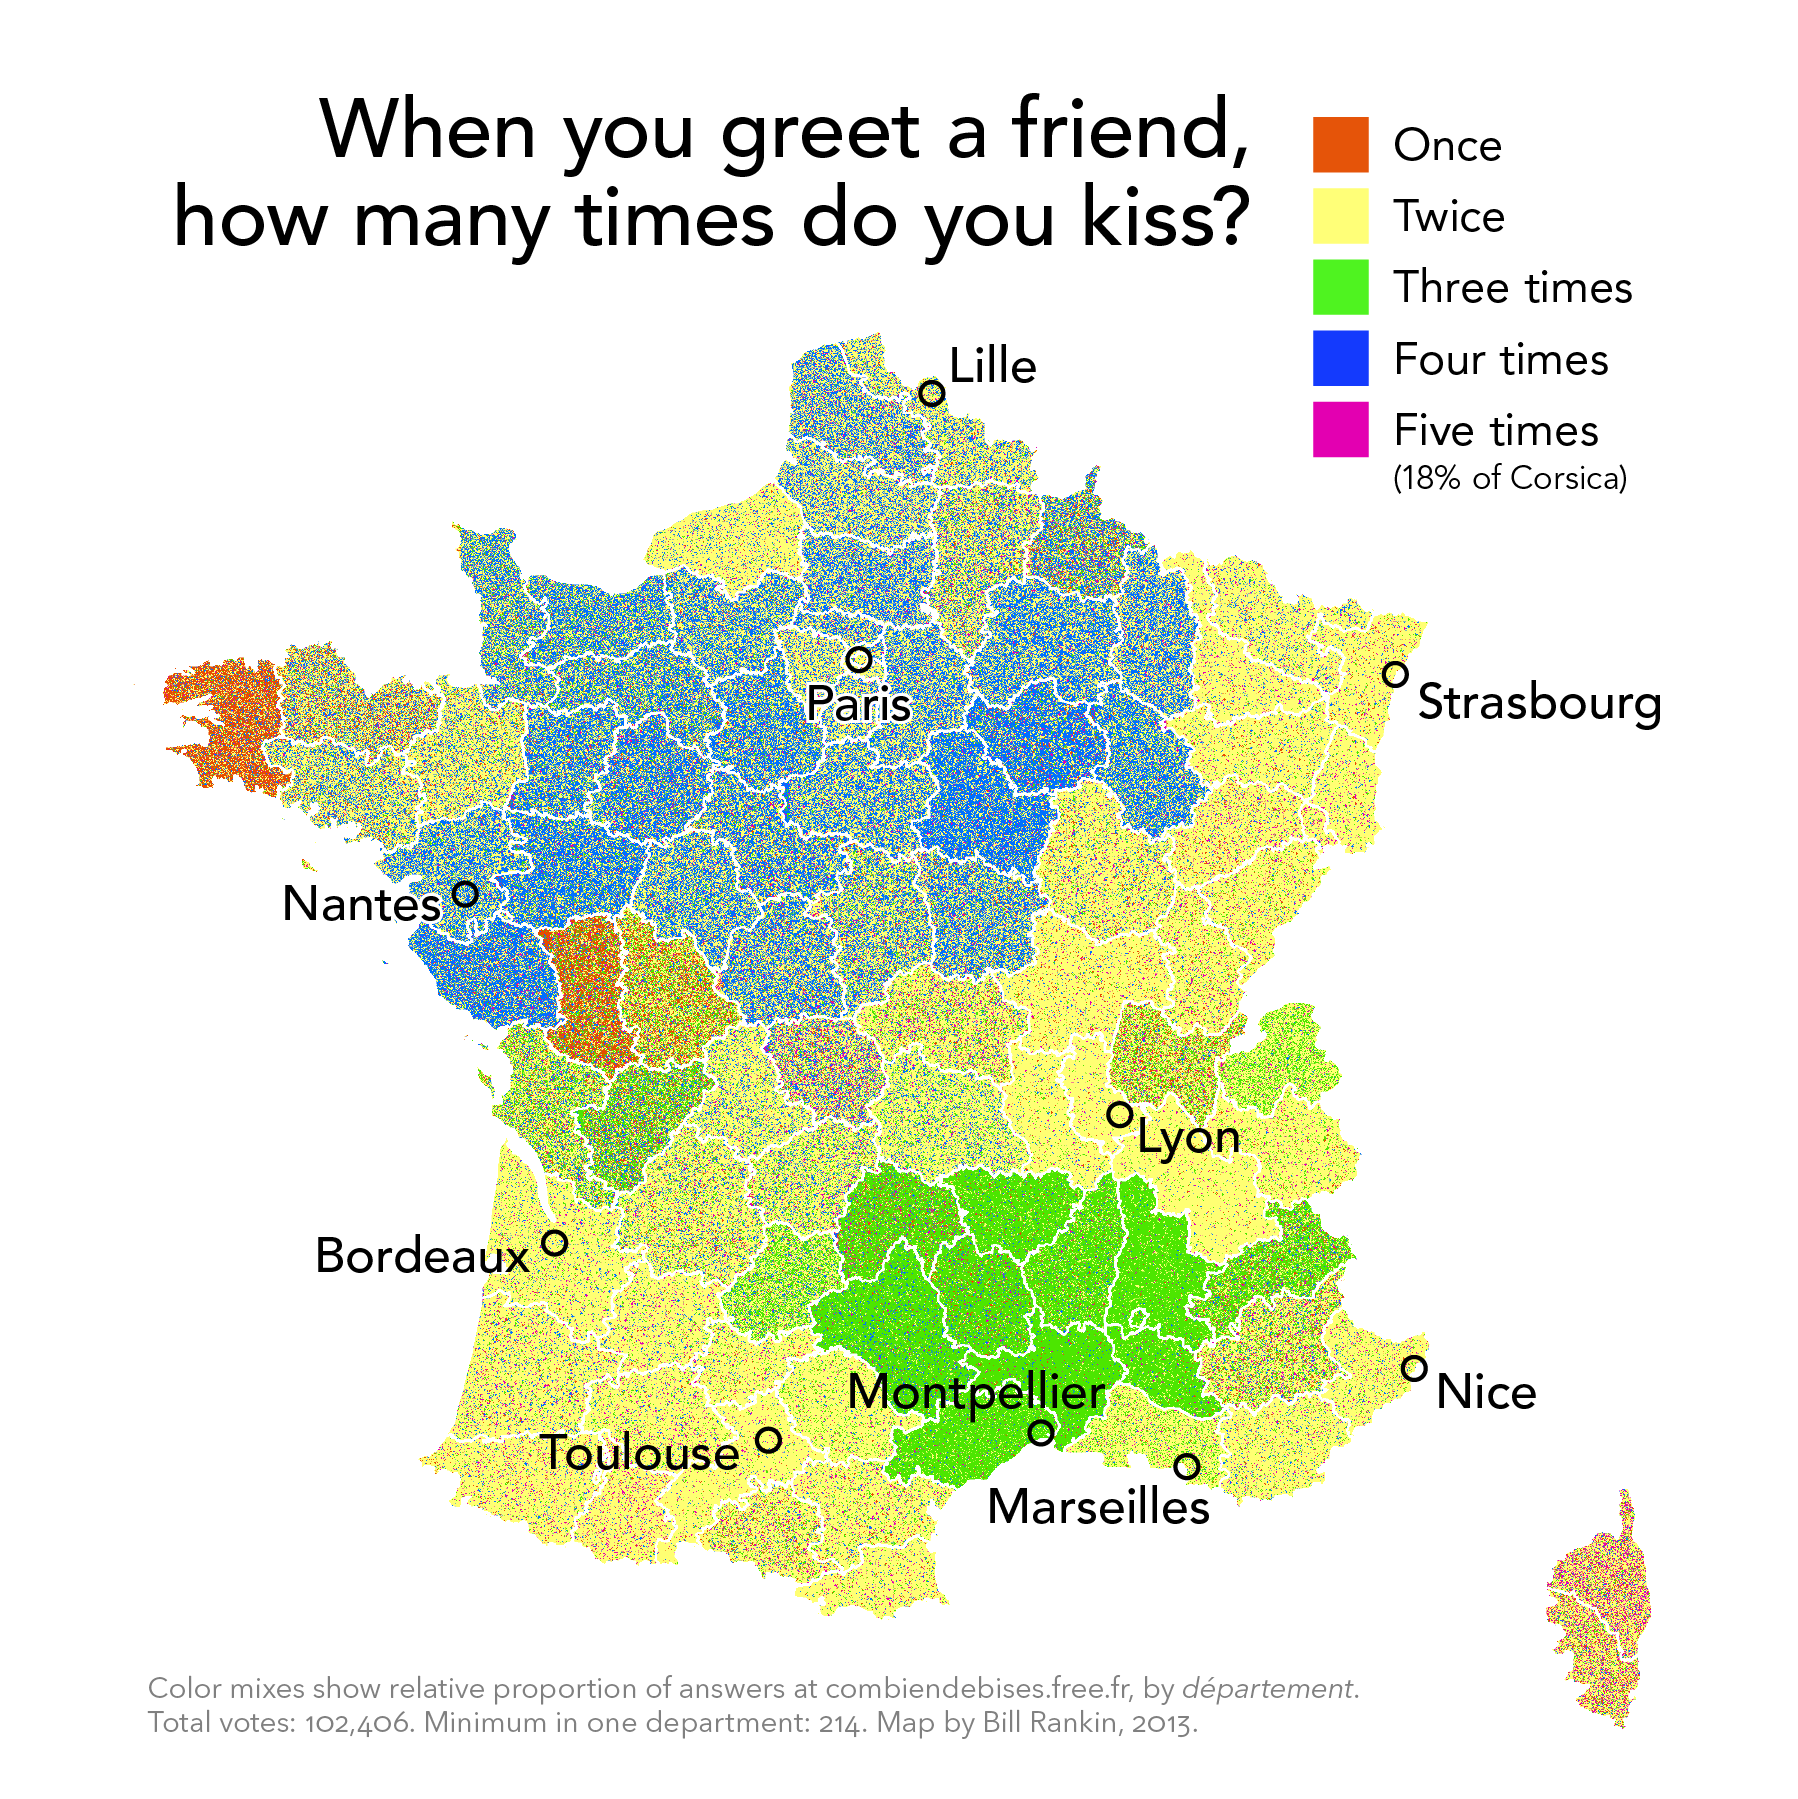 French Kisses: When You Greet a Friend, How Many Times Do You Kiss? (Bill Rankin, radicalcartography.net)